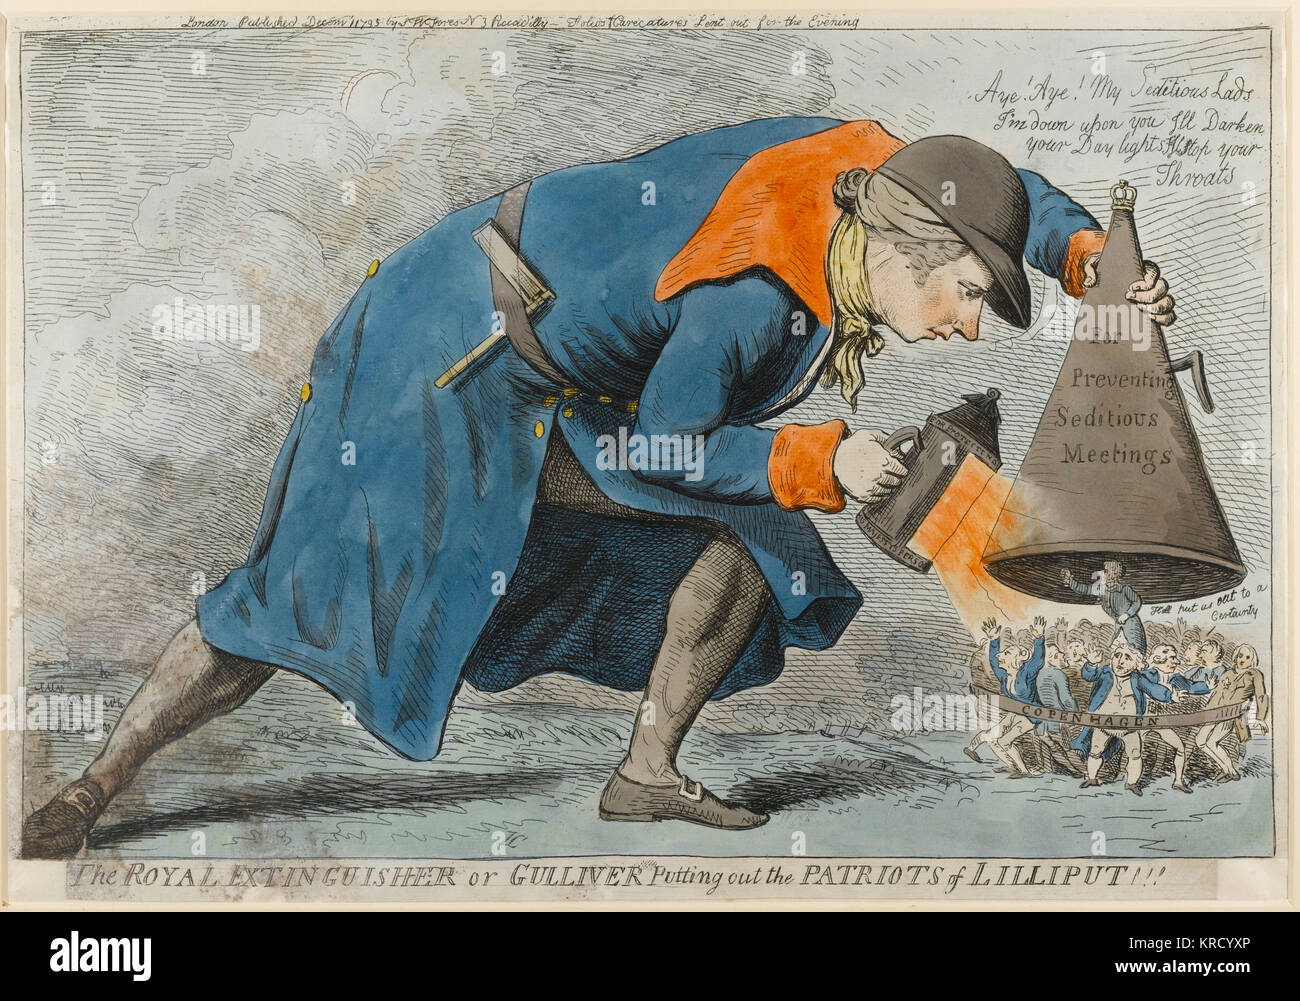 Satirical cartoon, The Royal Extinguisher or Gulliver Putting out the Patriots of Lilliput !!!  One of many satires - Stock Image